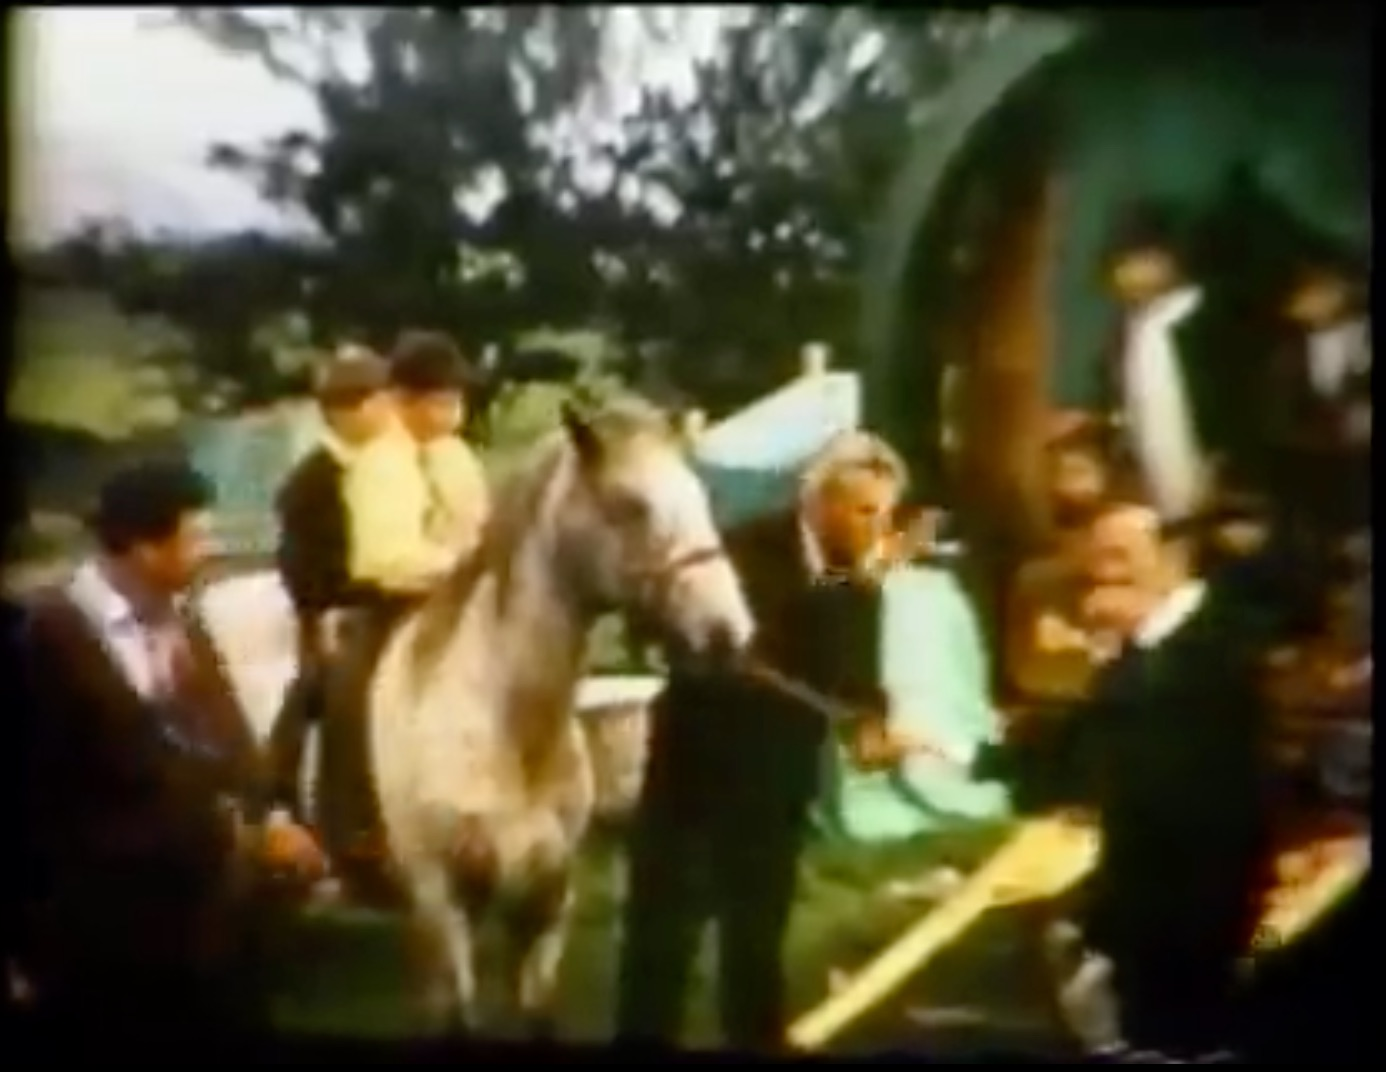 Boswell family super 8 footage from 1960's